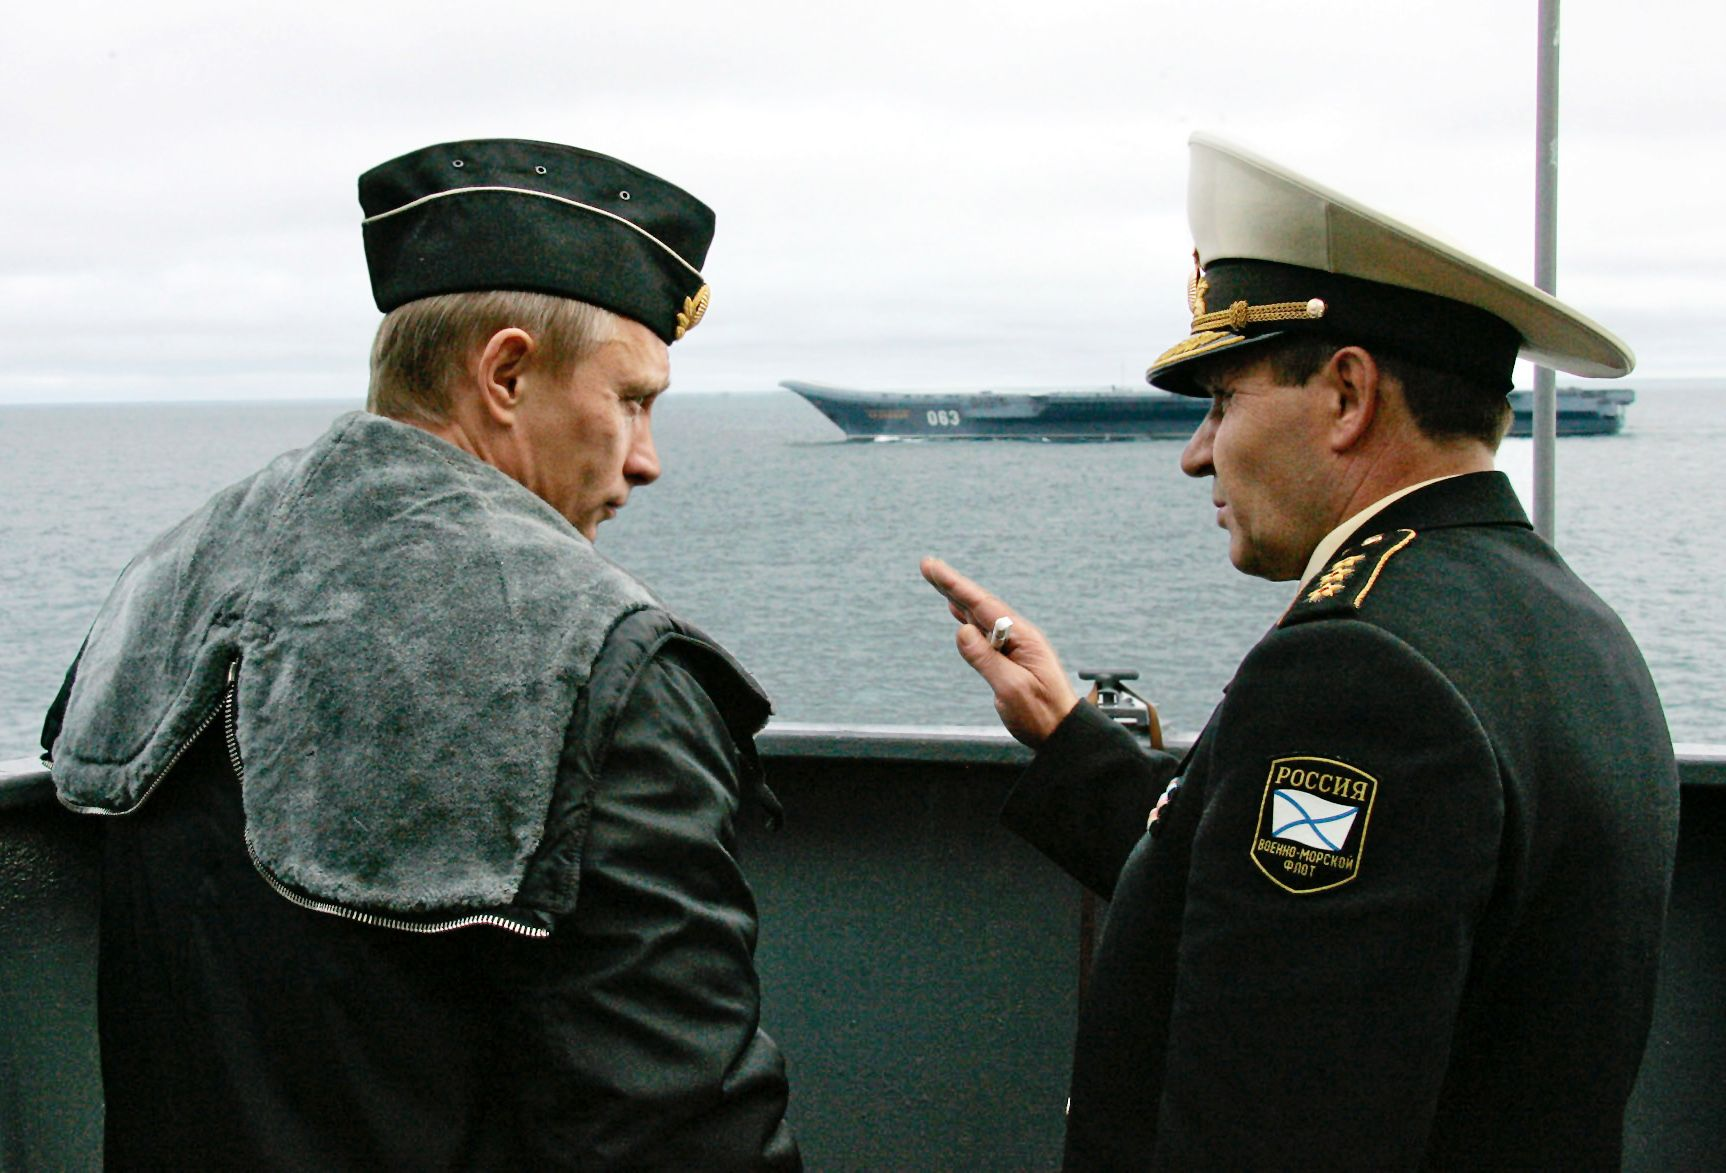 Putin in naval uniform